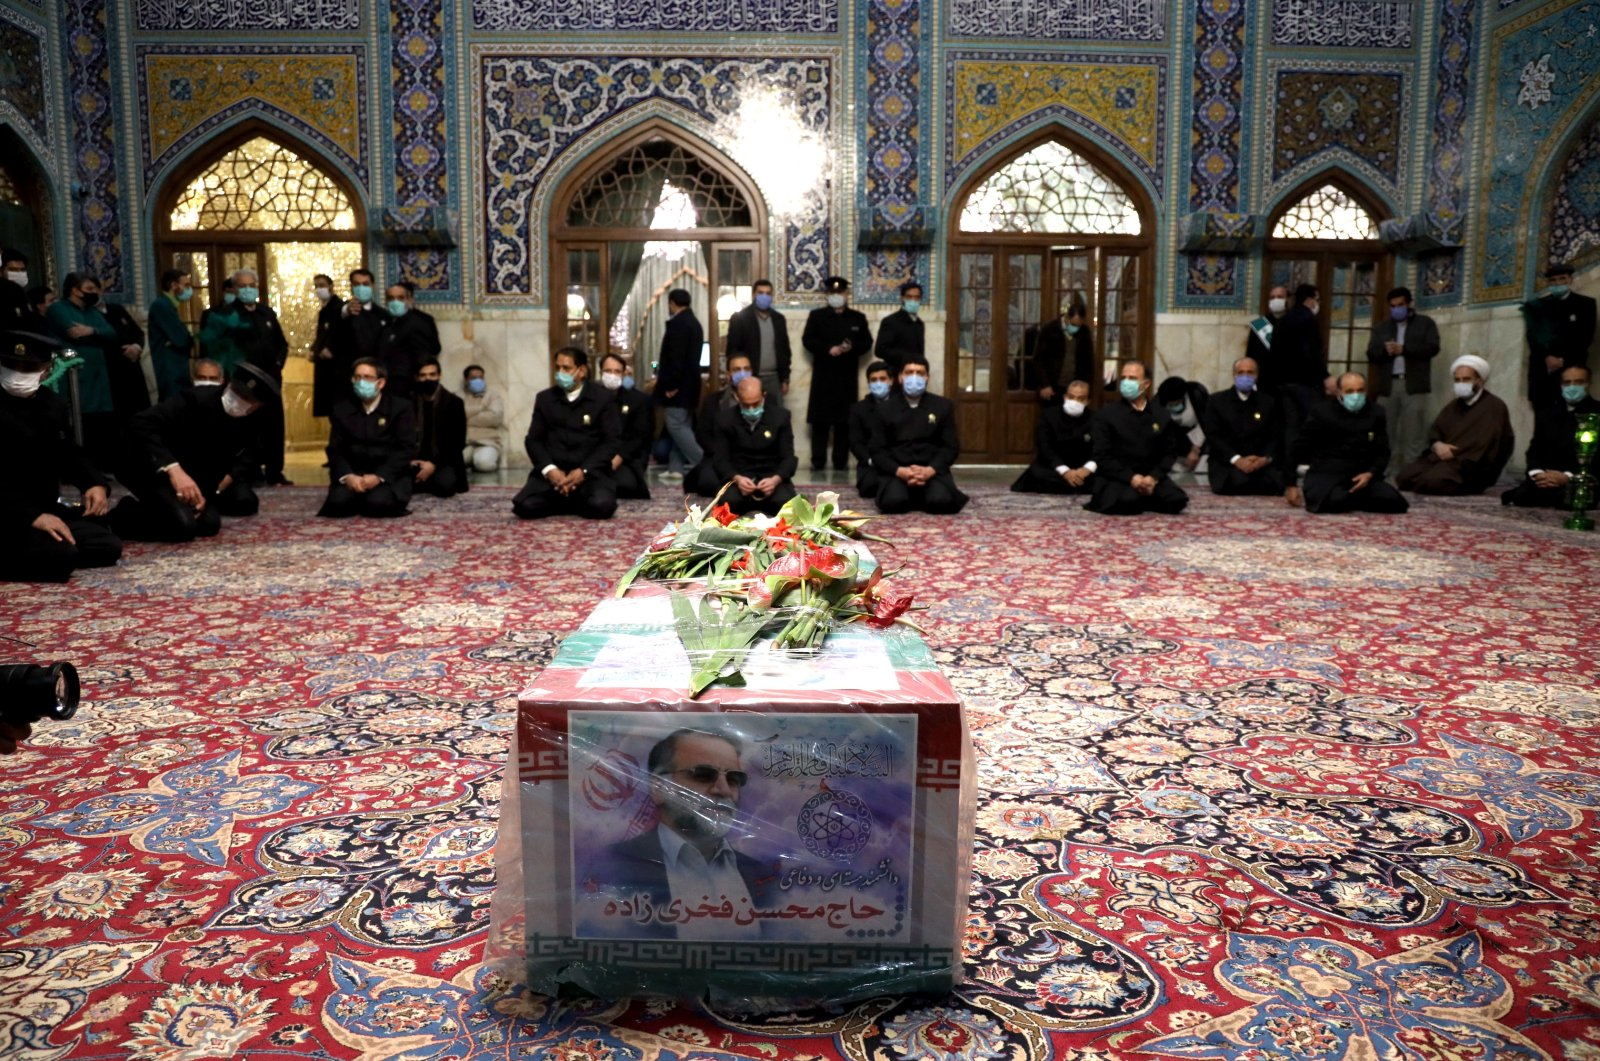 A handout picture provided by the Iranian defense ministry shows family members and officials praying over the coffin of slain Iranian nuclear scientist Mohsen Fakhrizadeh inside the Shrine of Imam Reza, during a funeral ceremony in the city of Mashhad, northeastern Iran, Nov. 29, 2020. (EPA Photo)